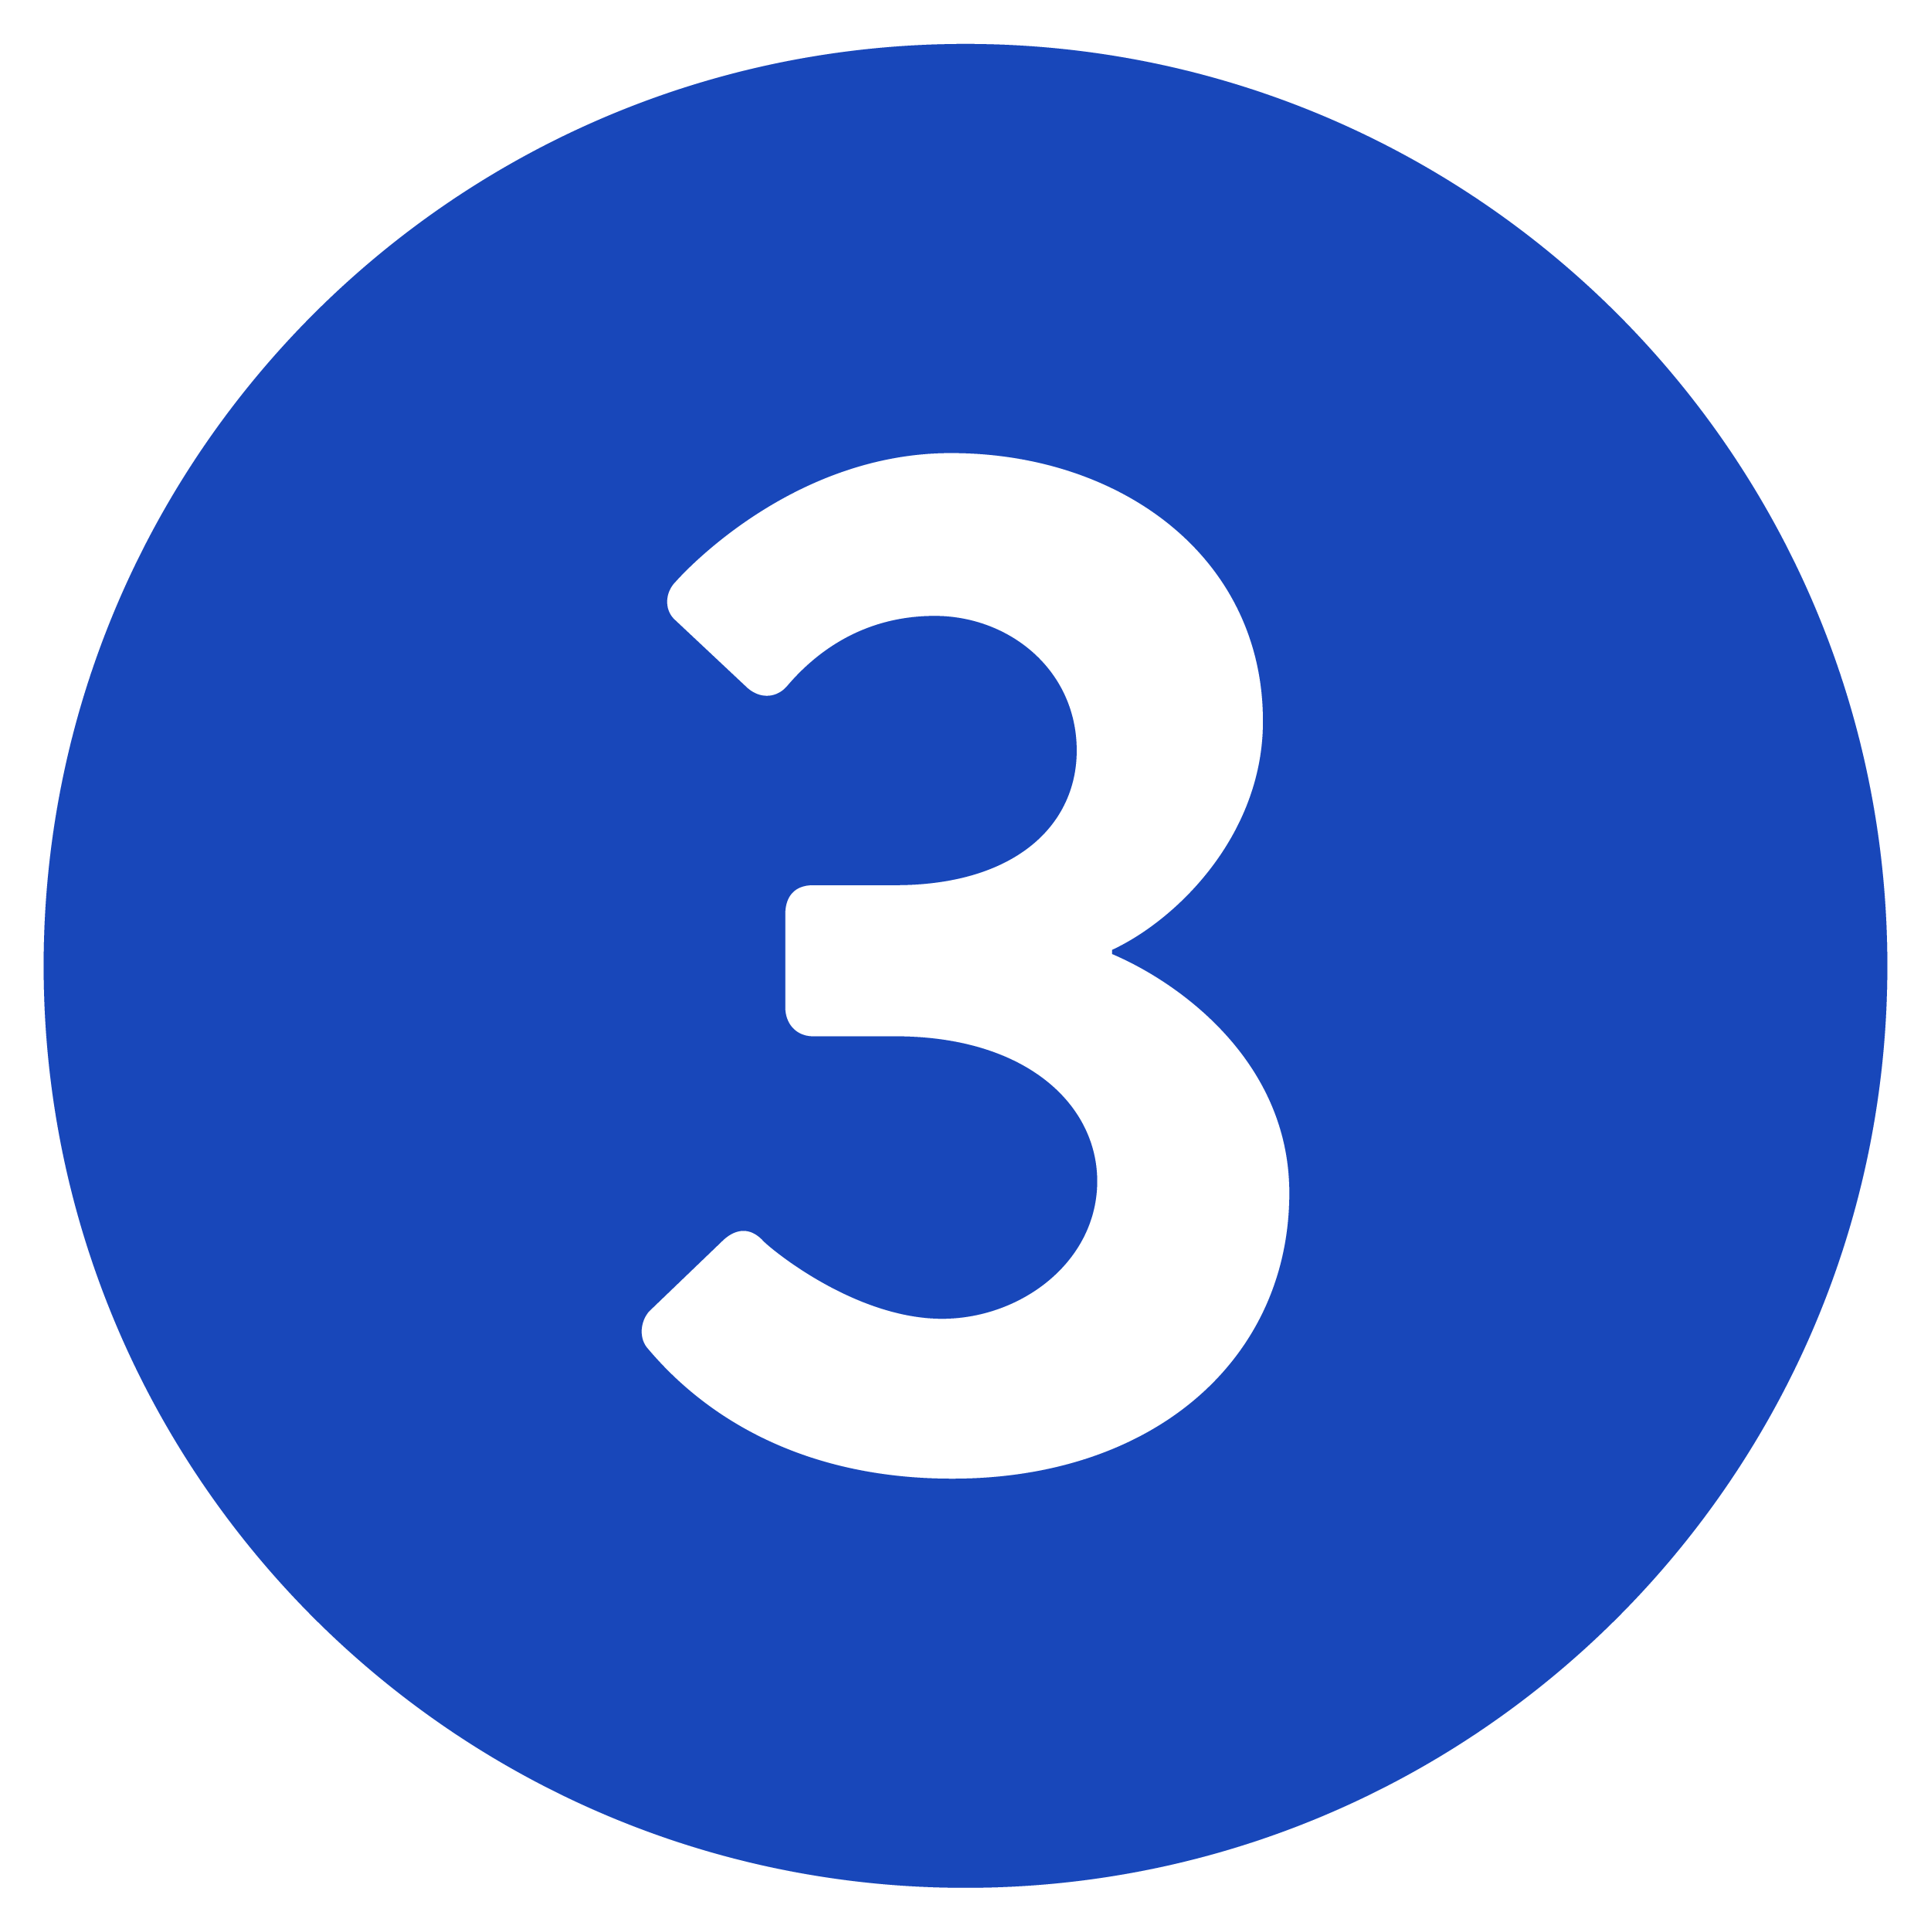 Number Three In Blue Circle